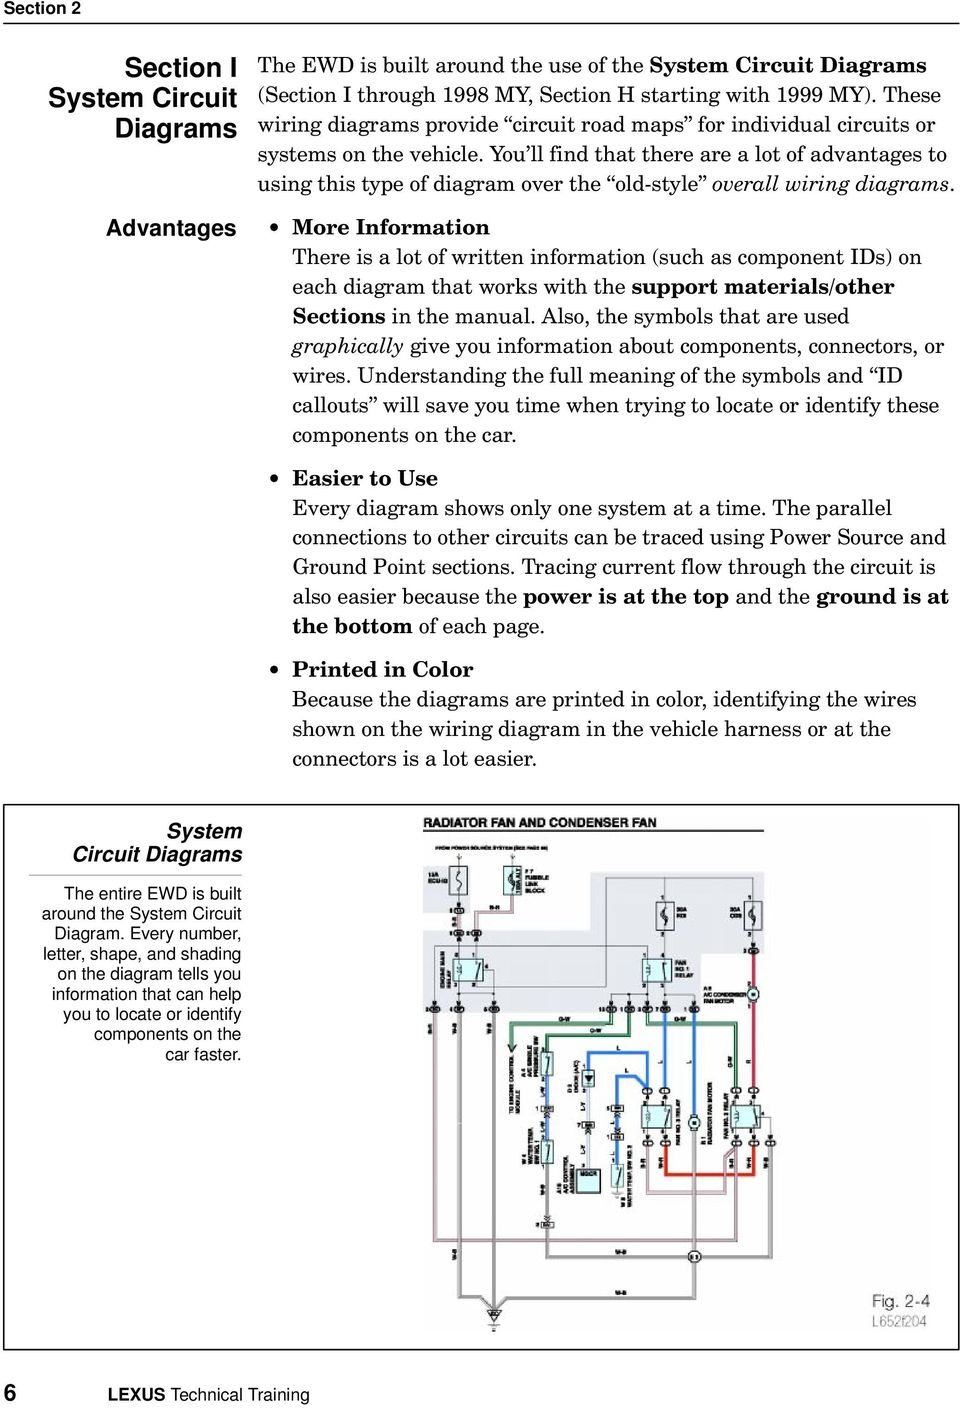 Using The Electrical Wiring Diagram Pdf Fan Photos For Help Your Working You Ll Find That There Are A Lot Of Advantages To This Type 7